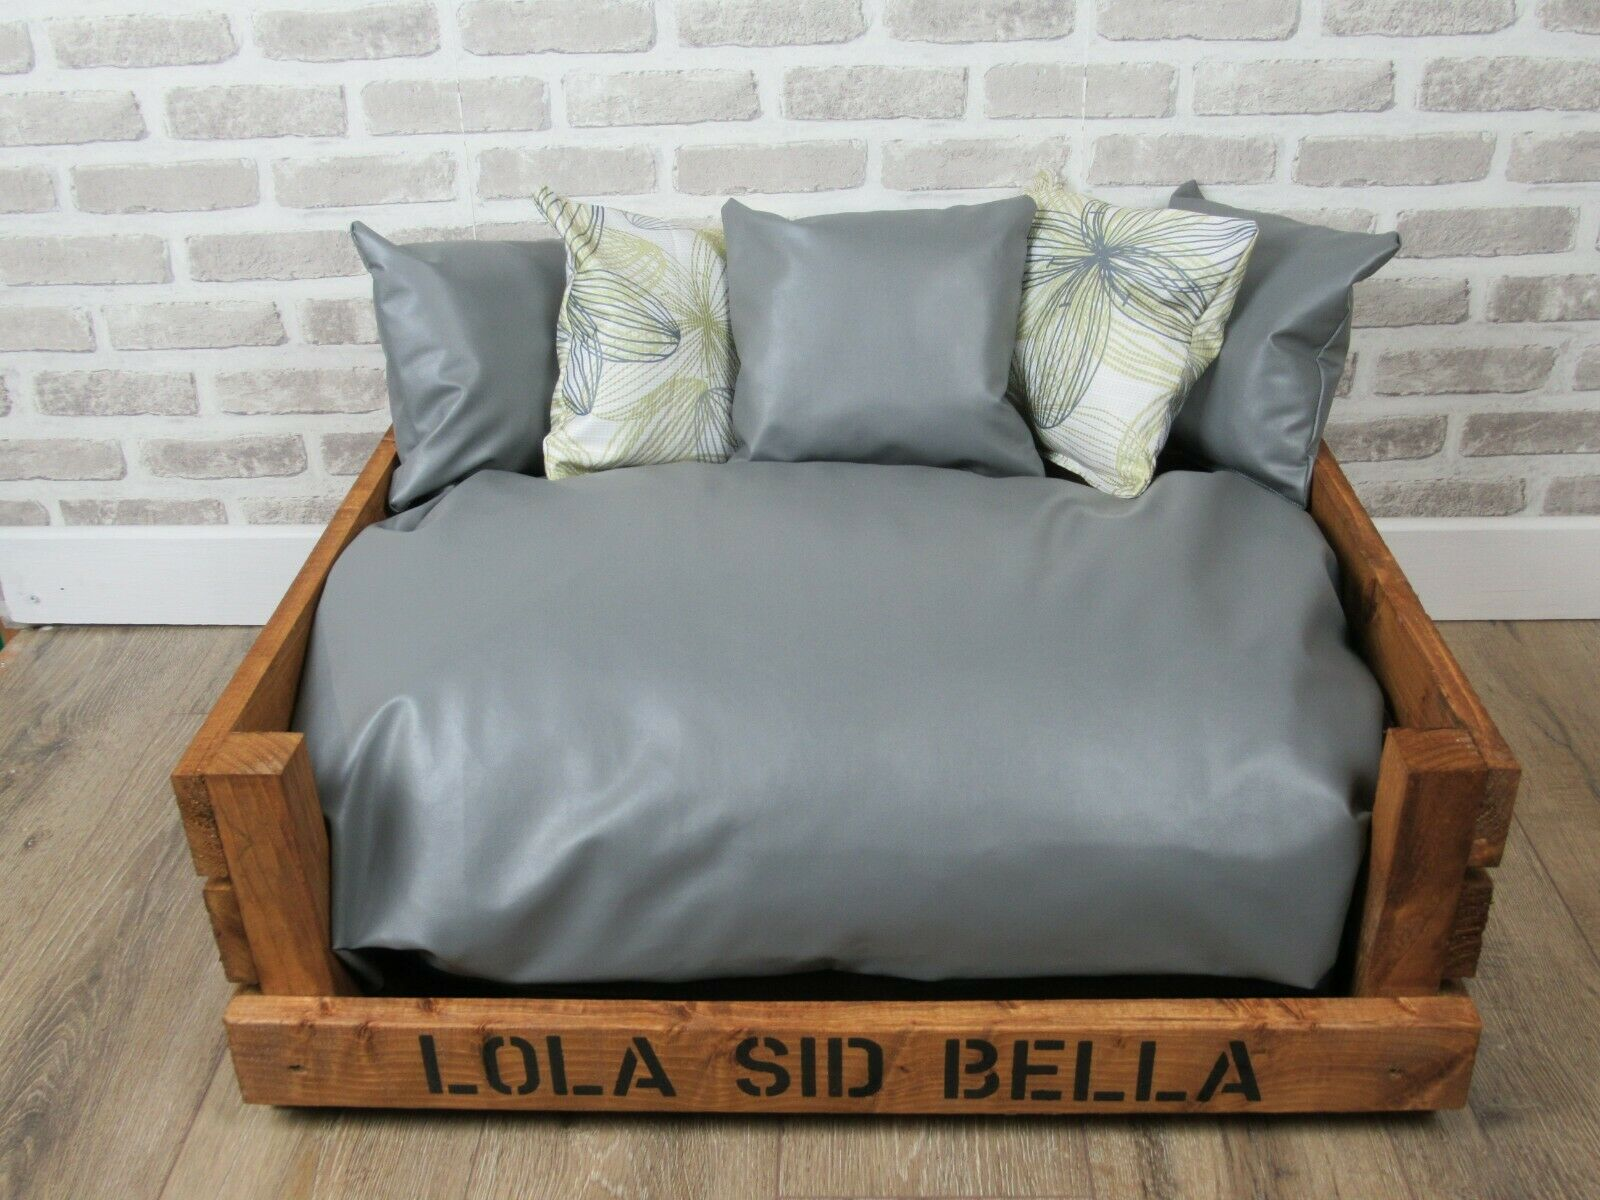 Large Personalised Rustic Wooden Dog Beds Complete With Faux Leather Cushions